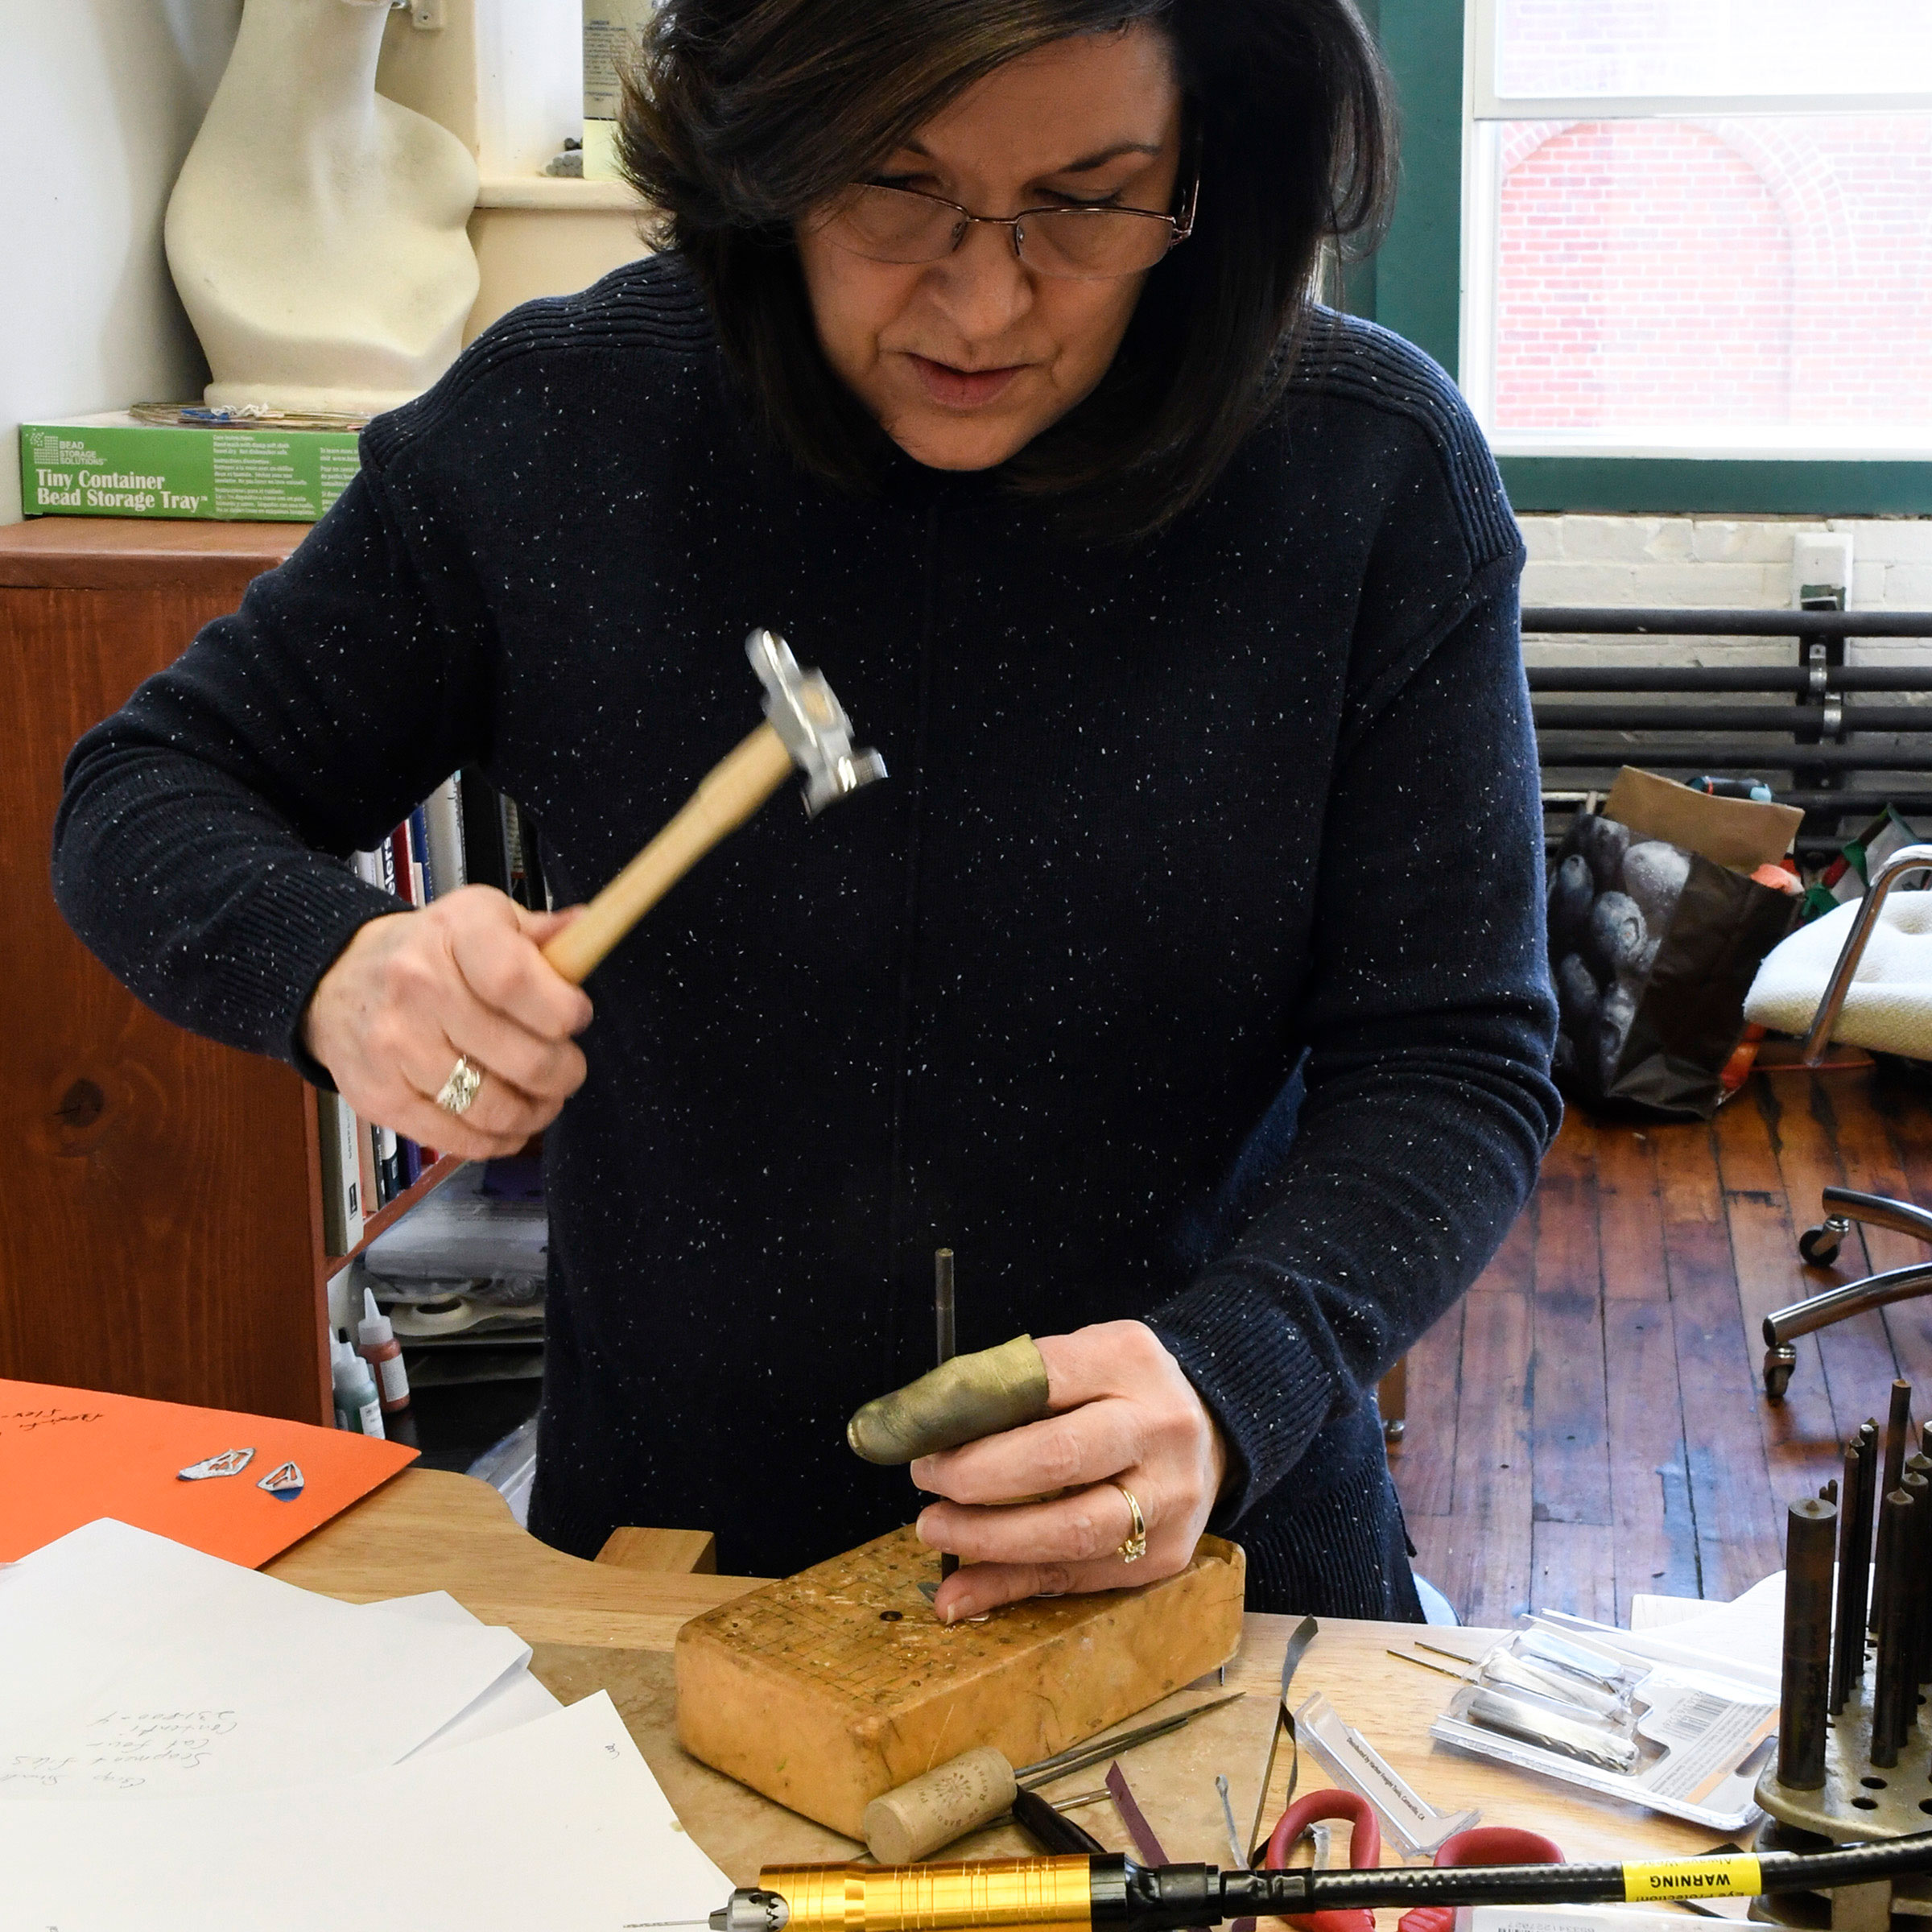 Metal stamping in a beginner's class